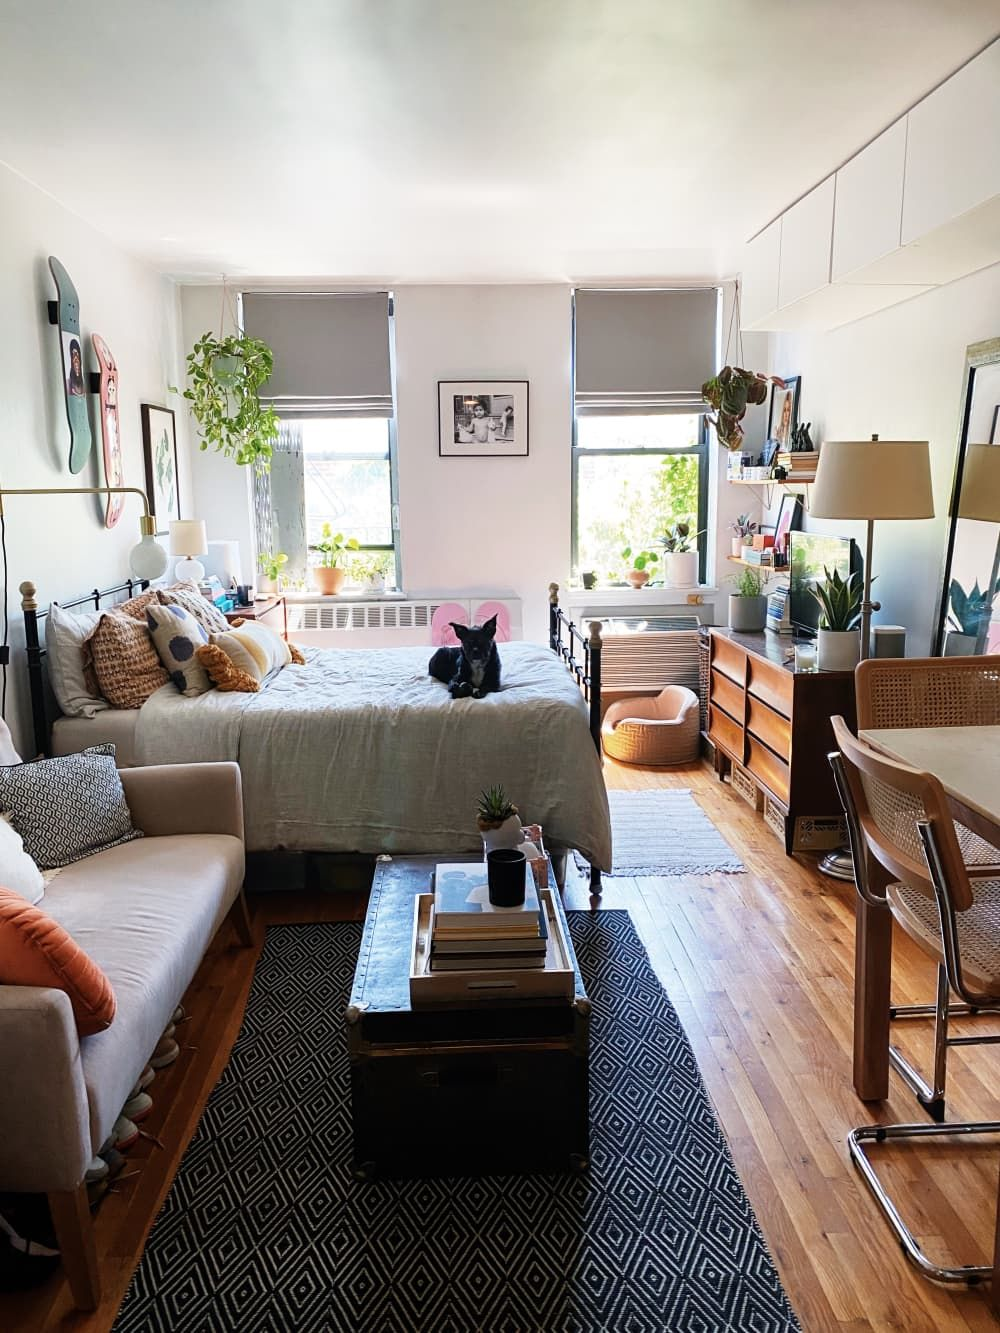 Before & After: A 350-Square-Foot Studio's Renter-Friendly Remodel Maximized Its Storage Potential